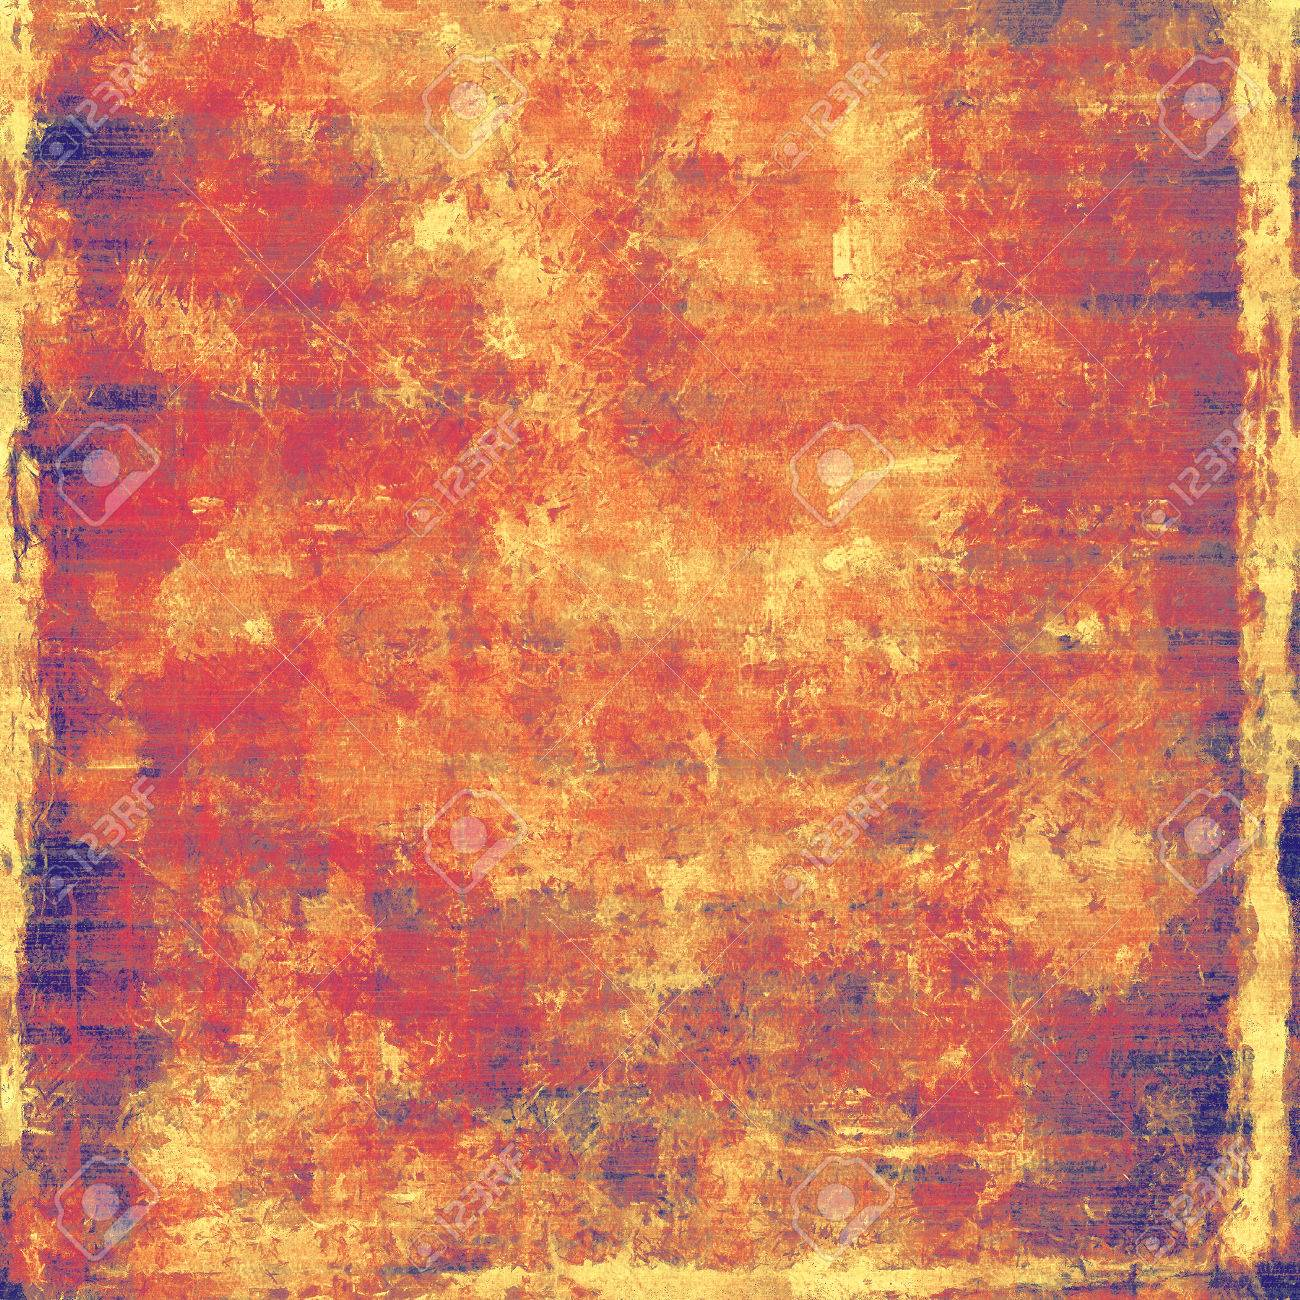 Antique Vintage Texture Old fashioned Weathered Background 1300x1300